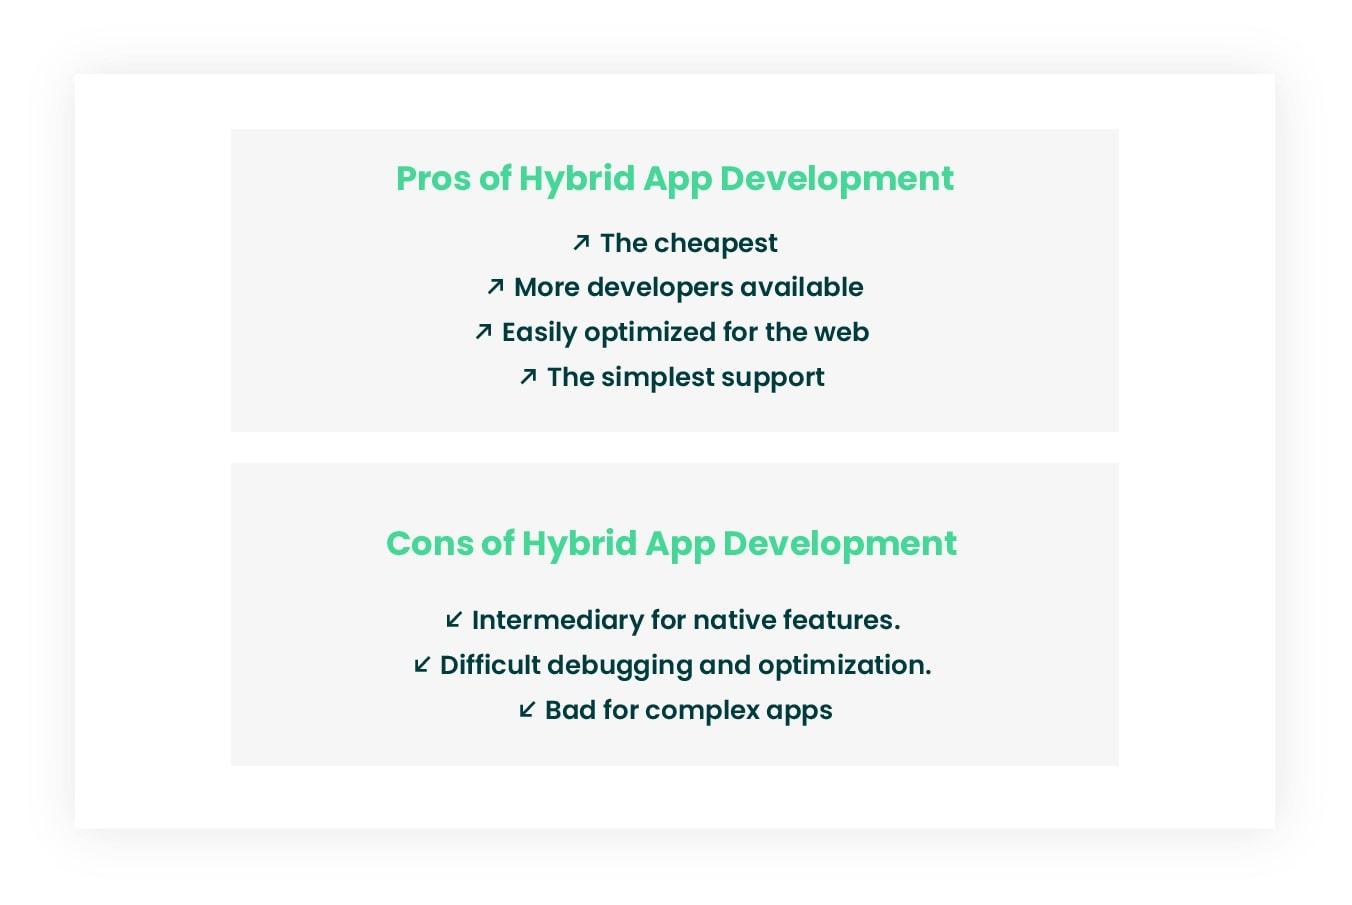 Pros and cons of hybrid app development infographic